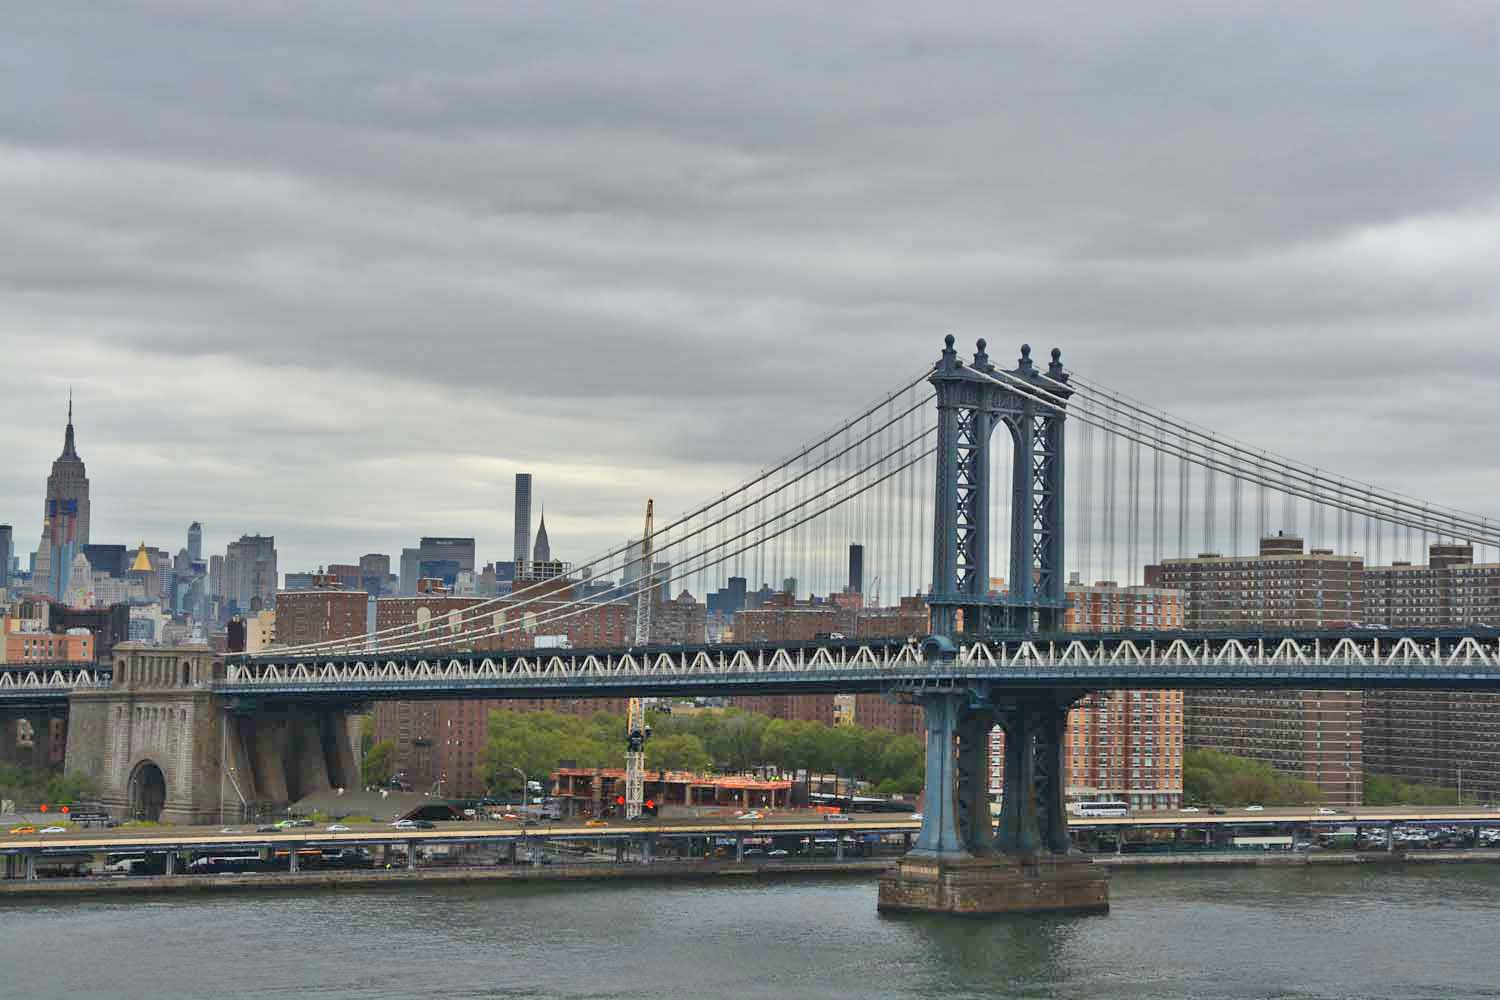 Manhattan Bridge to the left